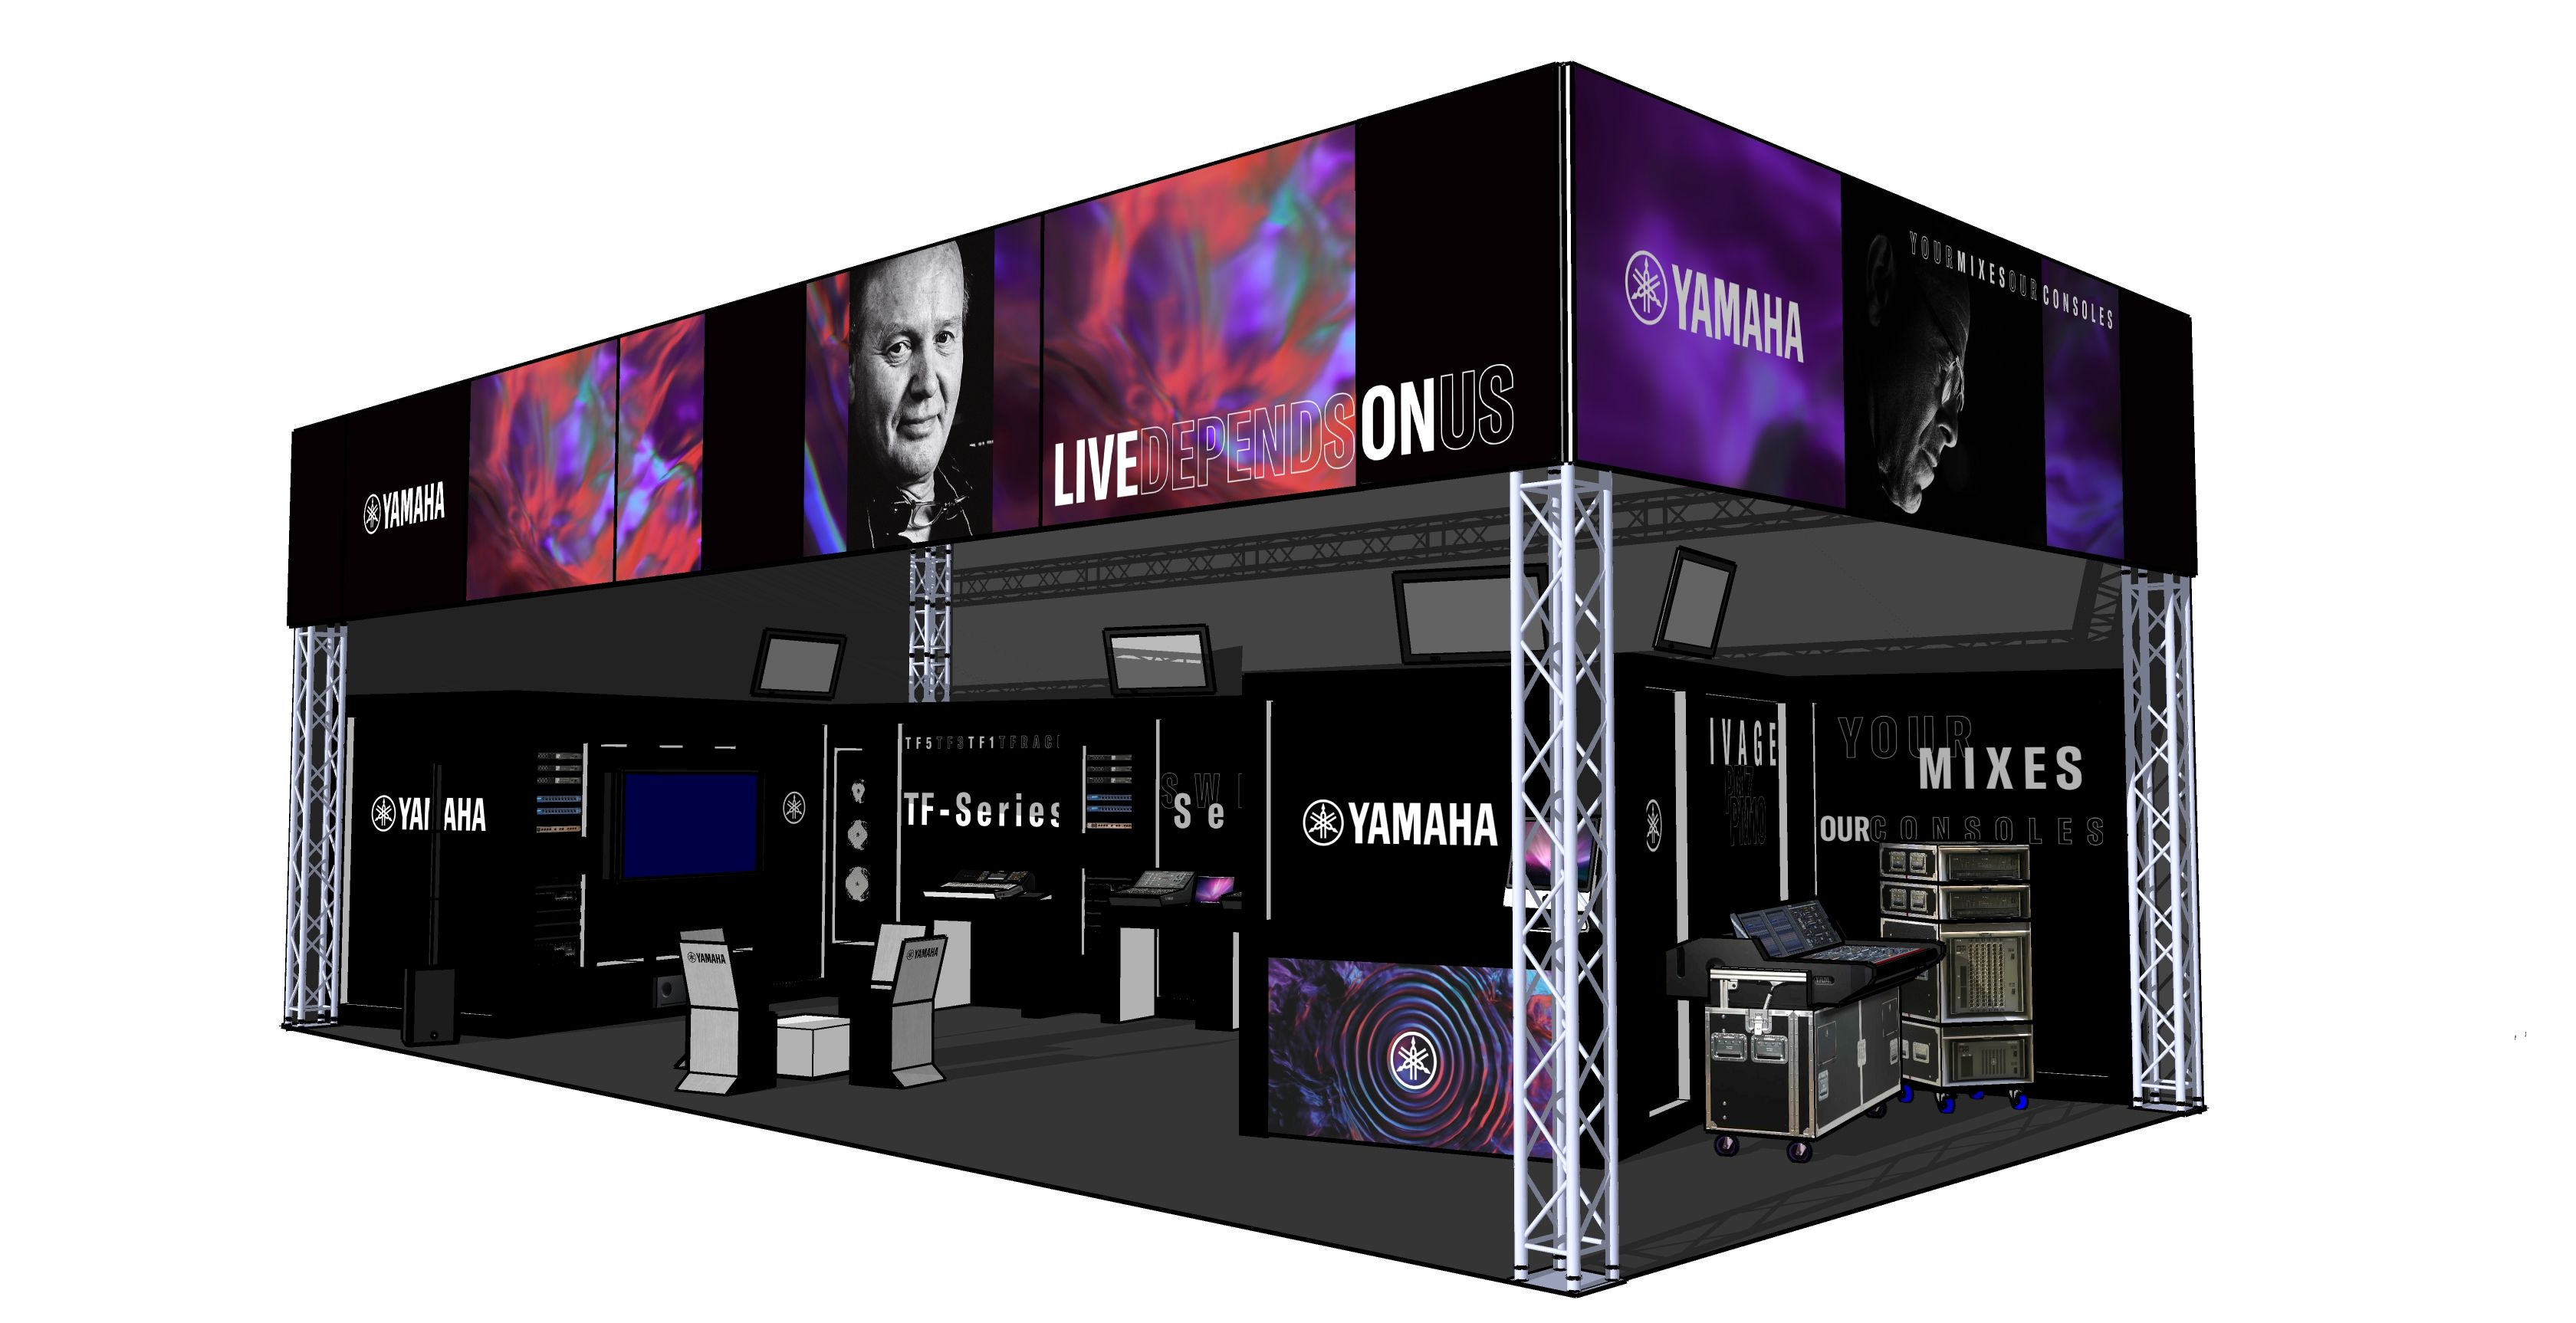 Held every two years at the Rotterdam Ahoy, Cue is the biggest and most important trade show for events, installation and entertainment technology in the Benelux countries. The 2020 show sees Yamaha expanding its presence with a series of seminars.